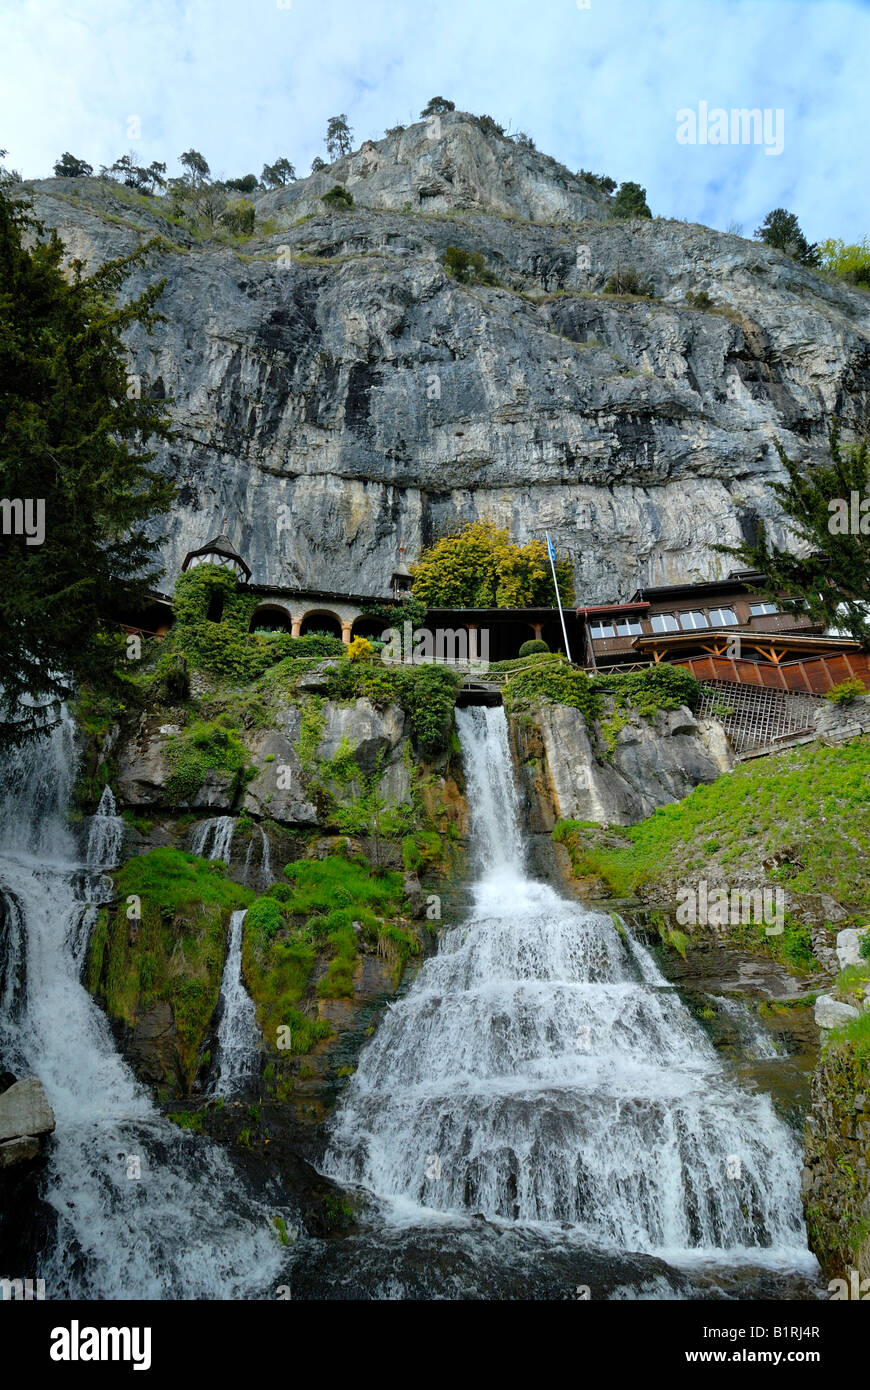 St. Beatus Caves site and waterfalls in Berner Oberland, Canton of Bern, Switzerland, Europe - Stock Image